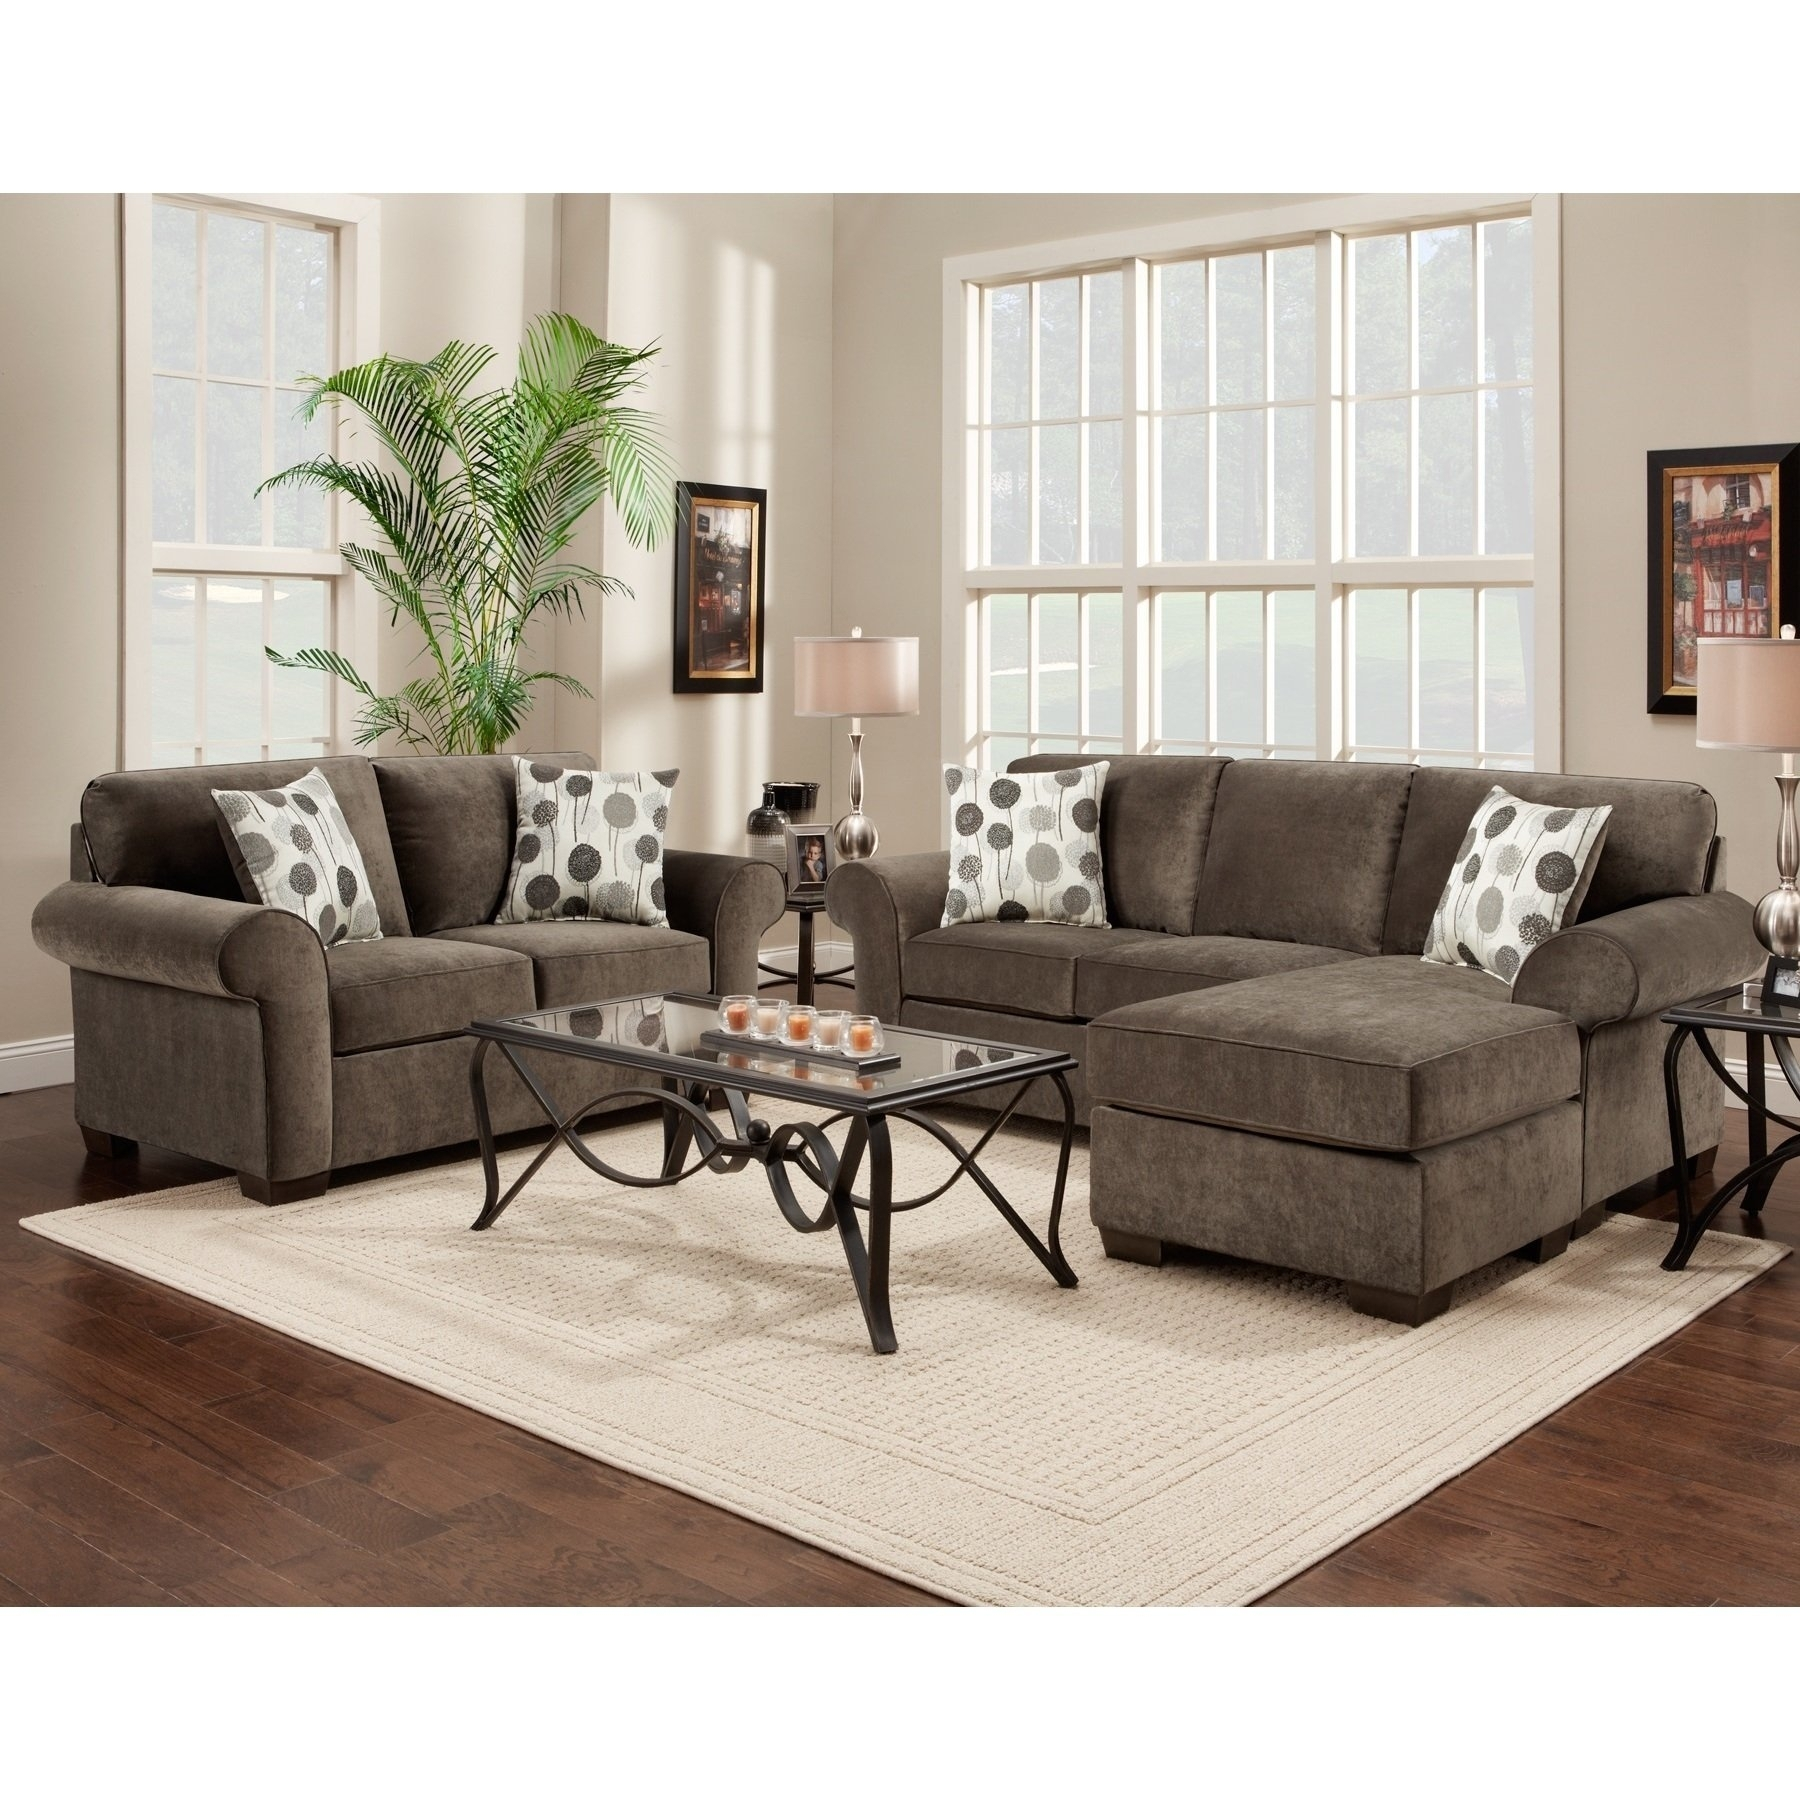 Loveseat Sectional | Whitecraftwoodard Mona Wicker Right Arm Inside Declan 3 Piece Power Reclining Sectionals With Left Facing Console Loveseat (Image 17 of 25)